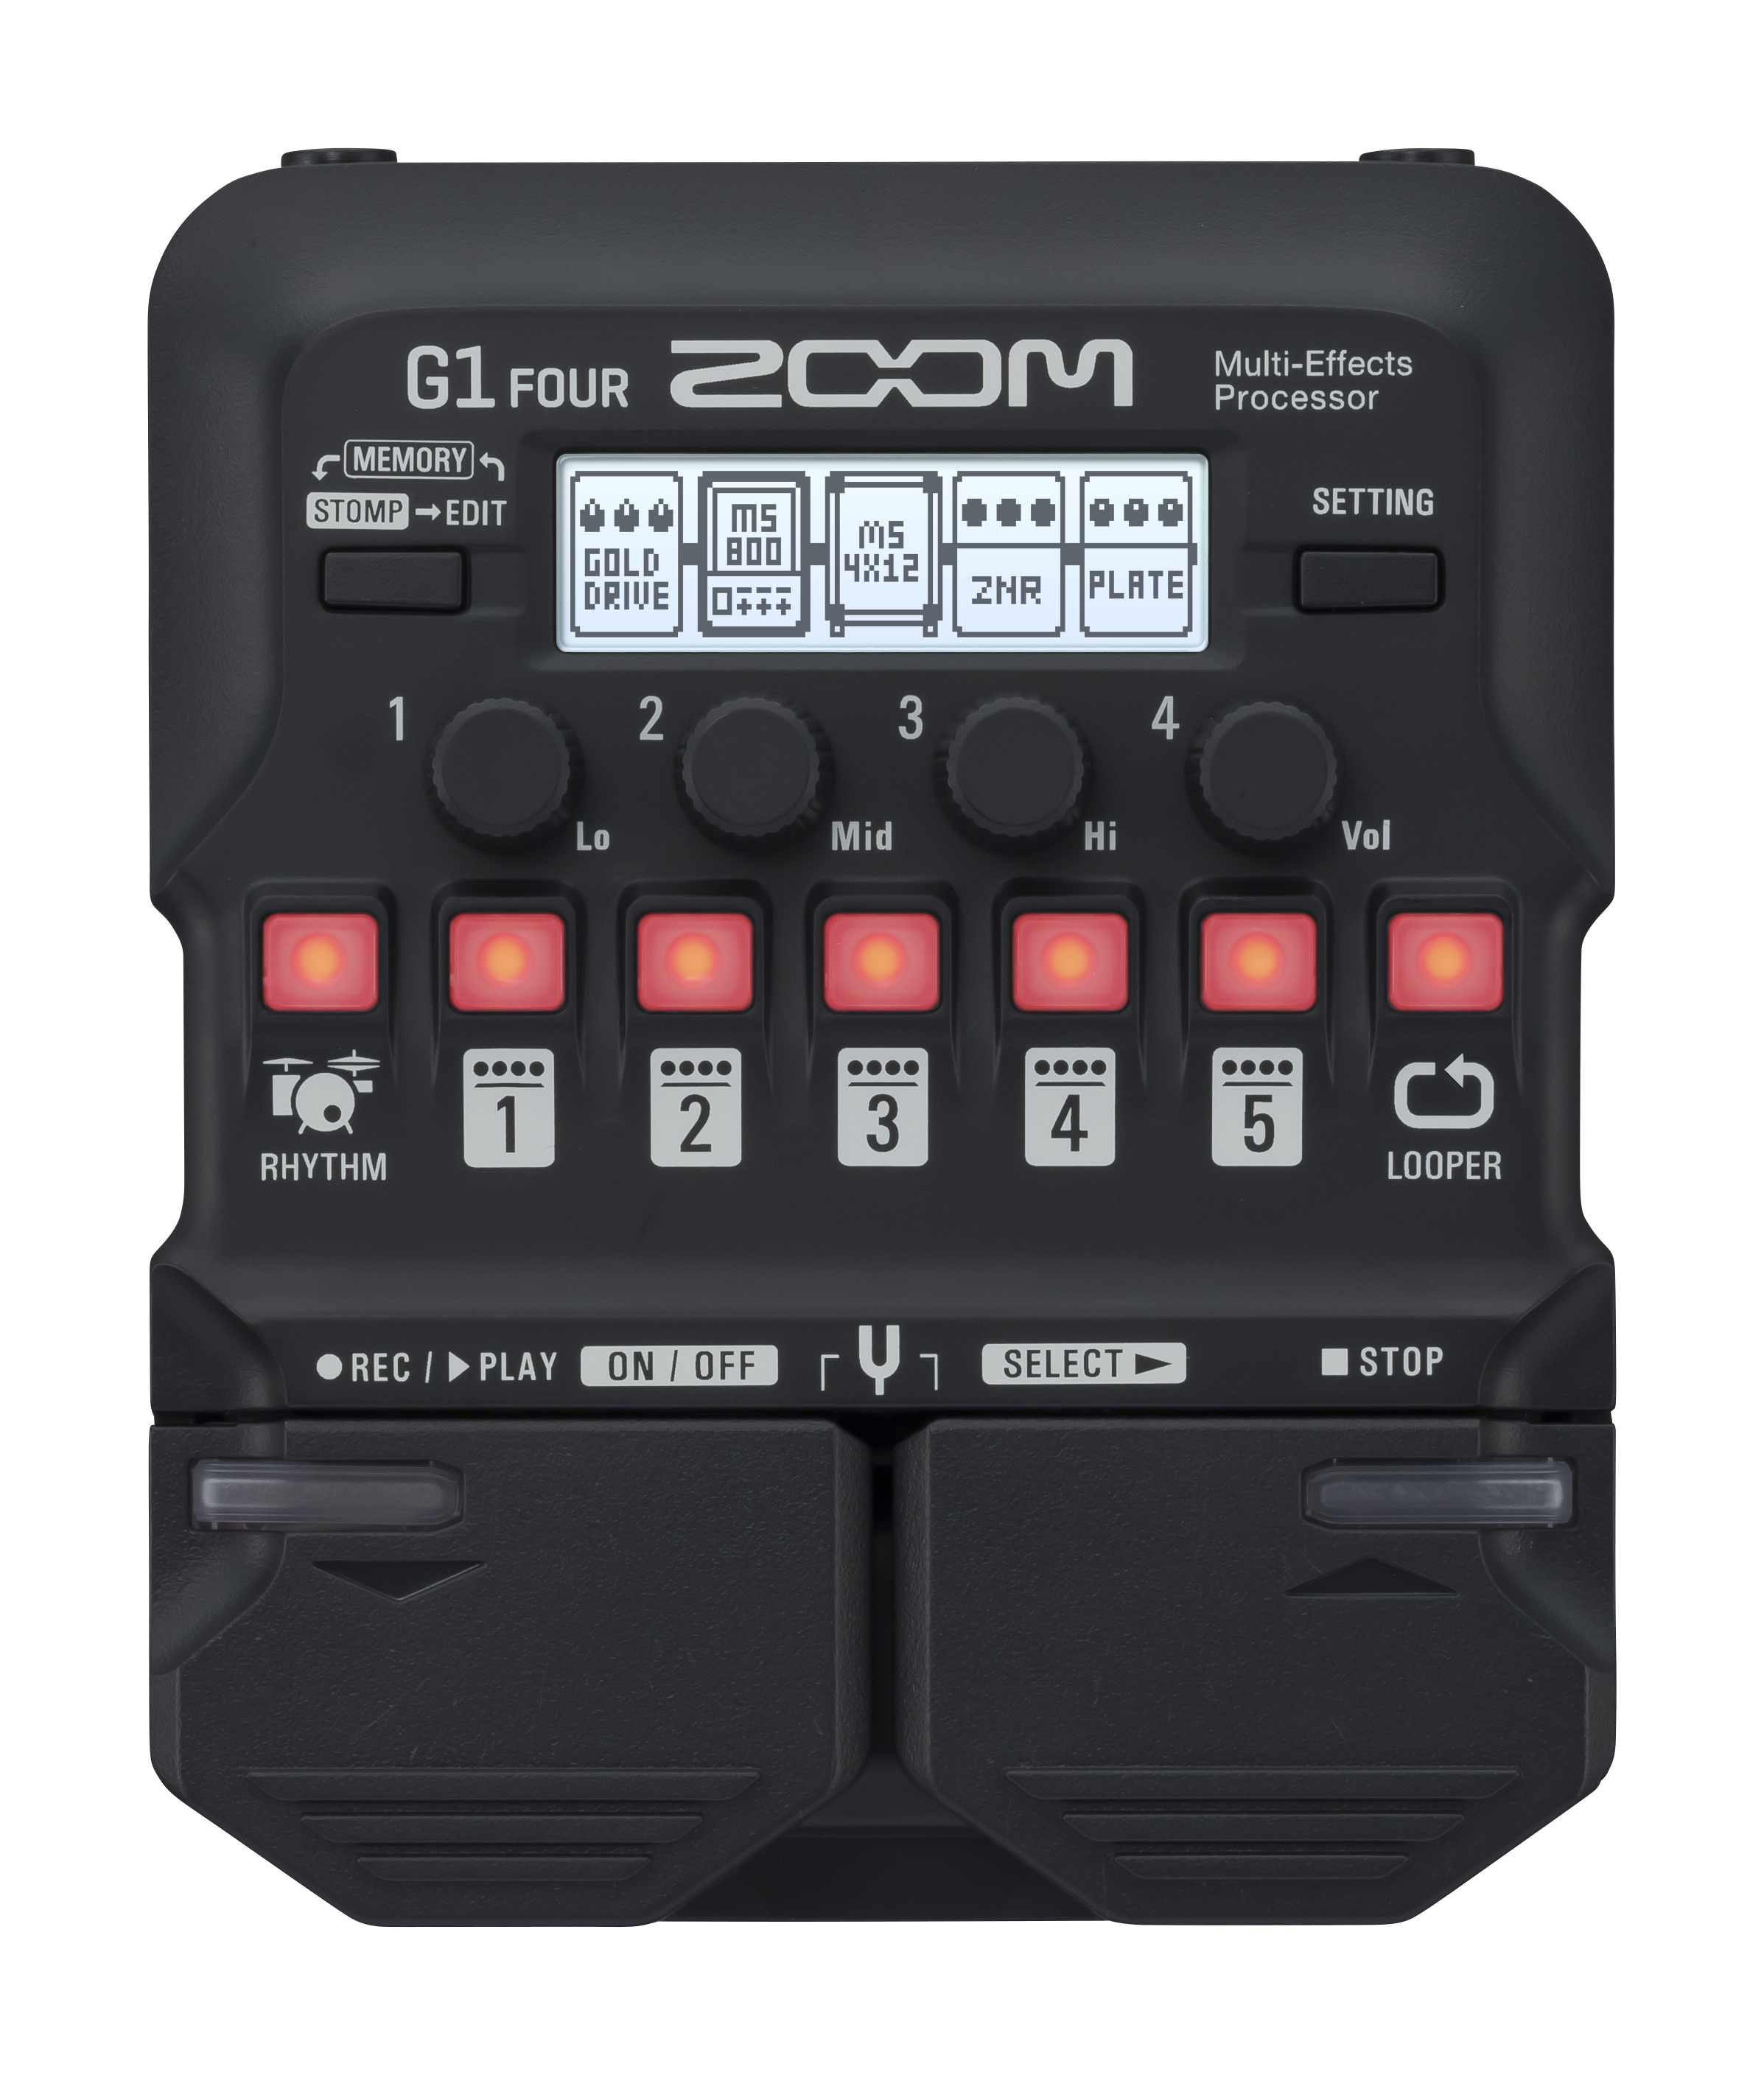 G1 FOUR / G1X FOUR Guitar Multi-Effects Processors | Zoom